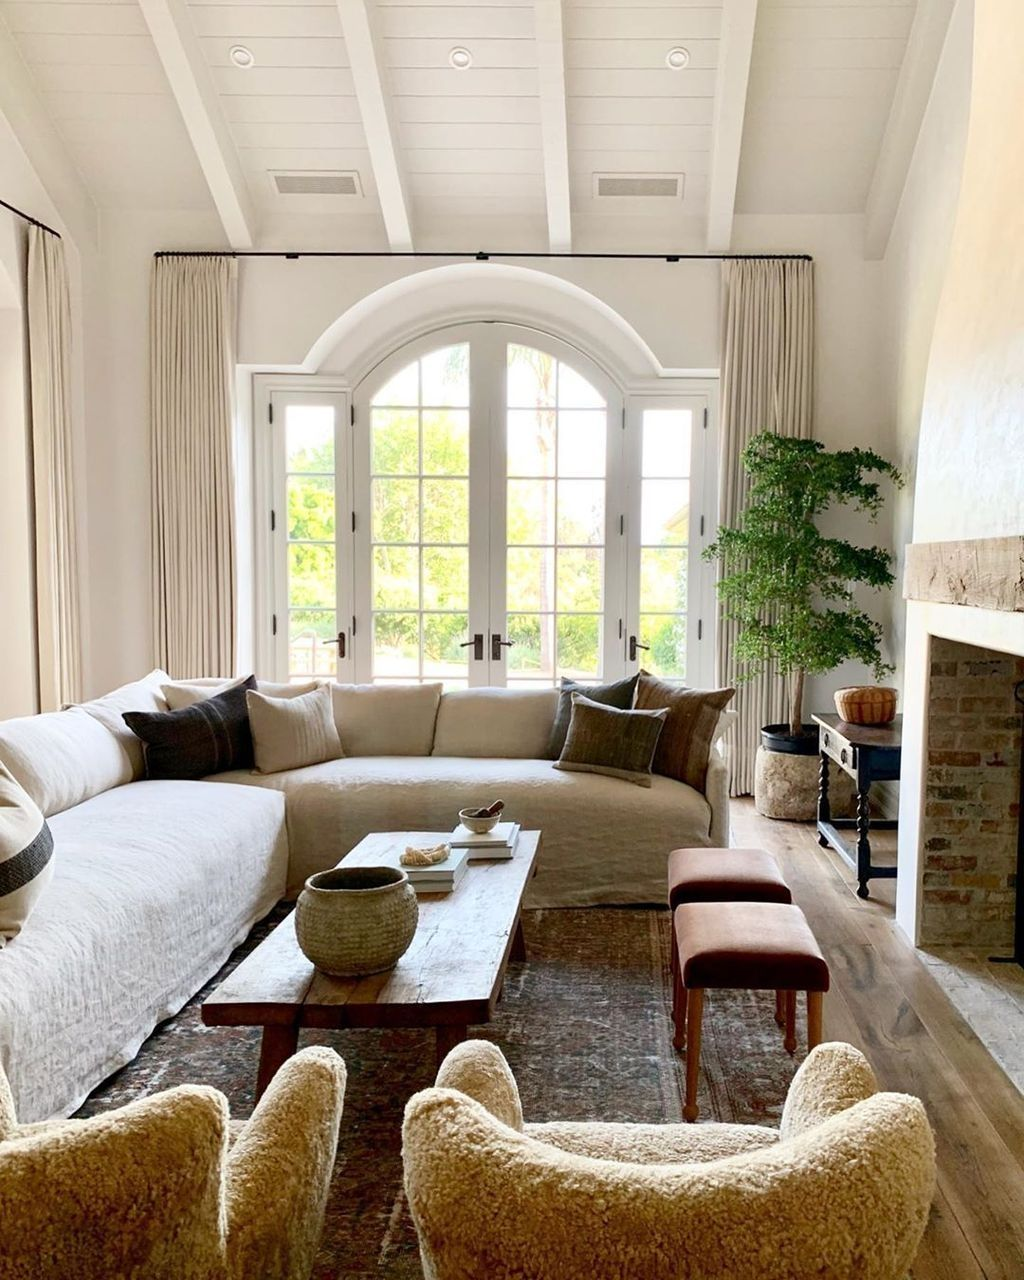 30 Pretty House Plants Ideas For Living Room Decoration Home Living Room Home House Interior